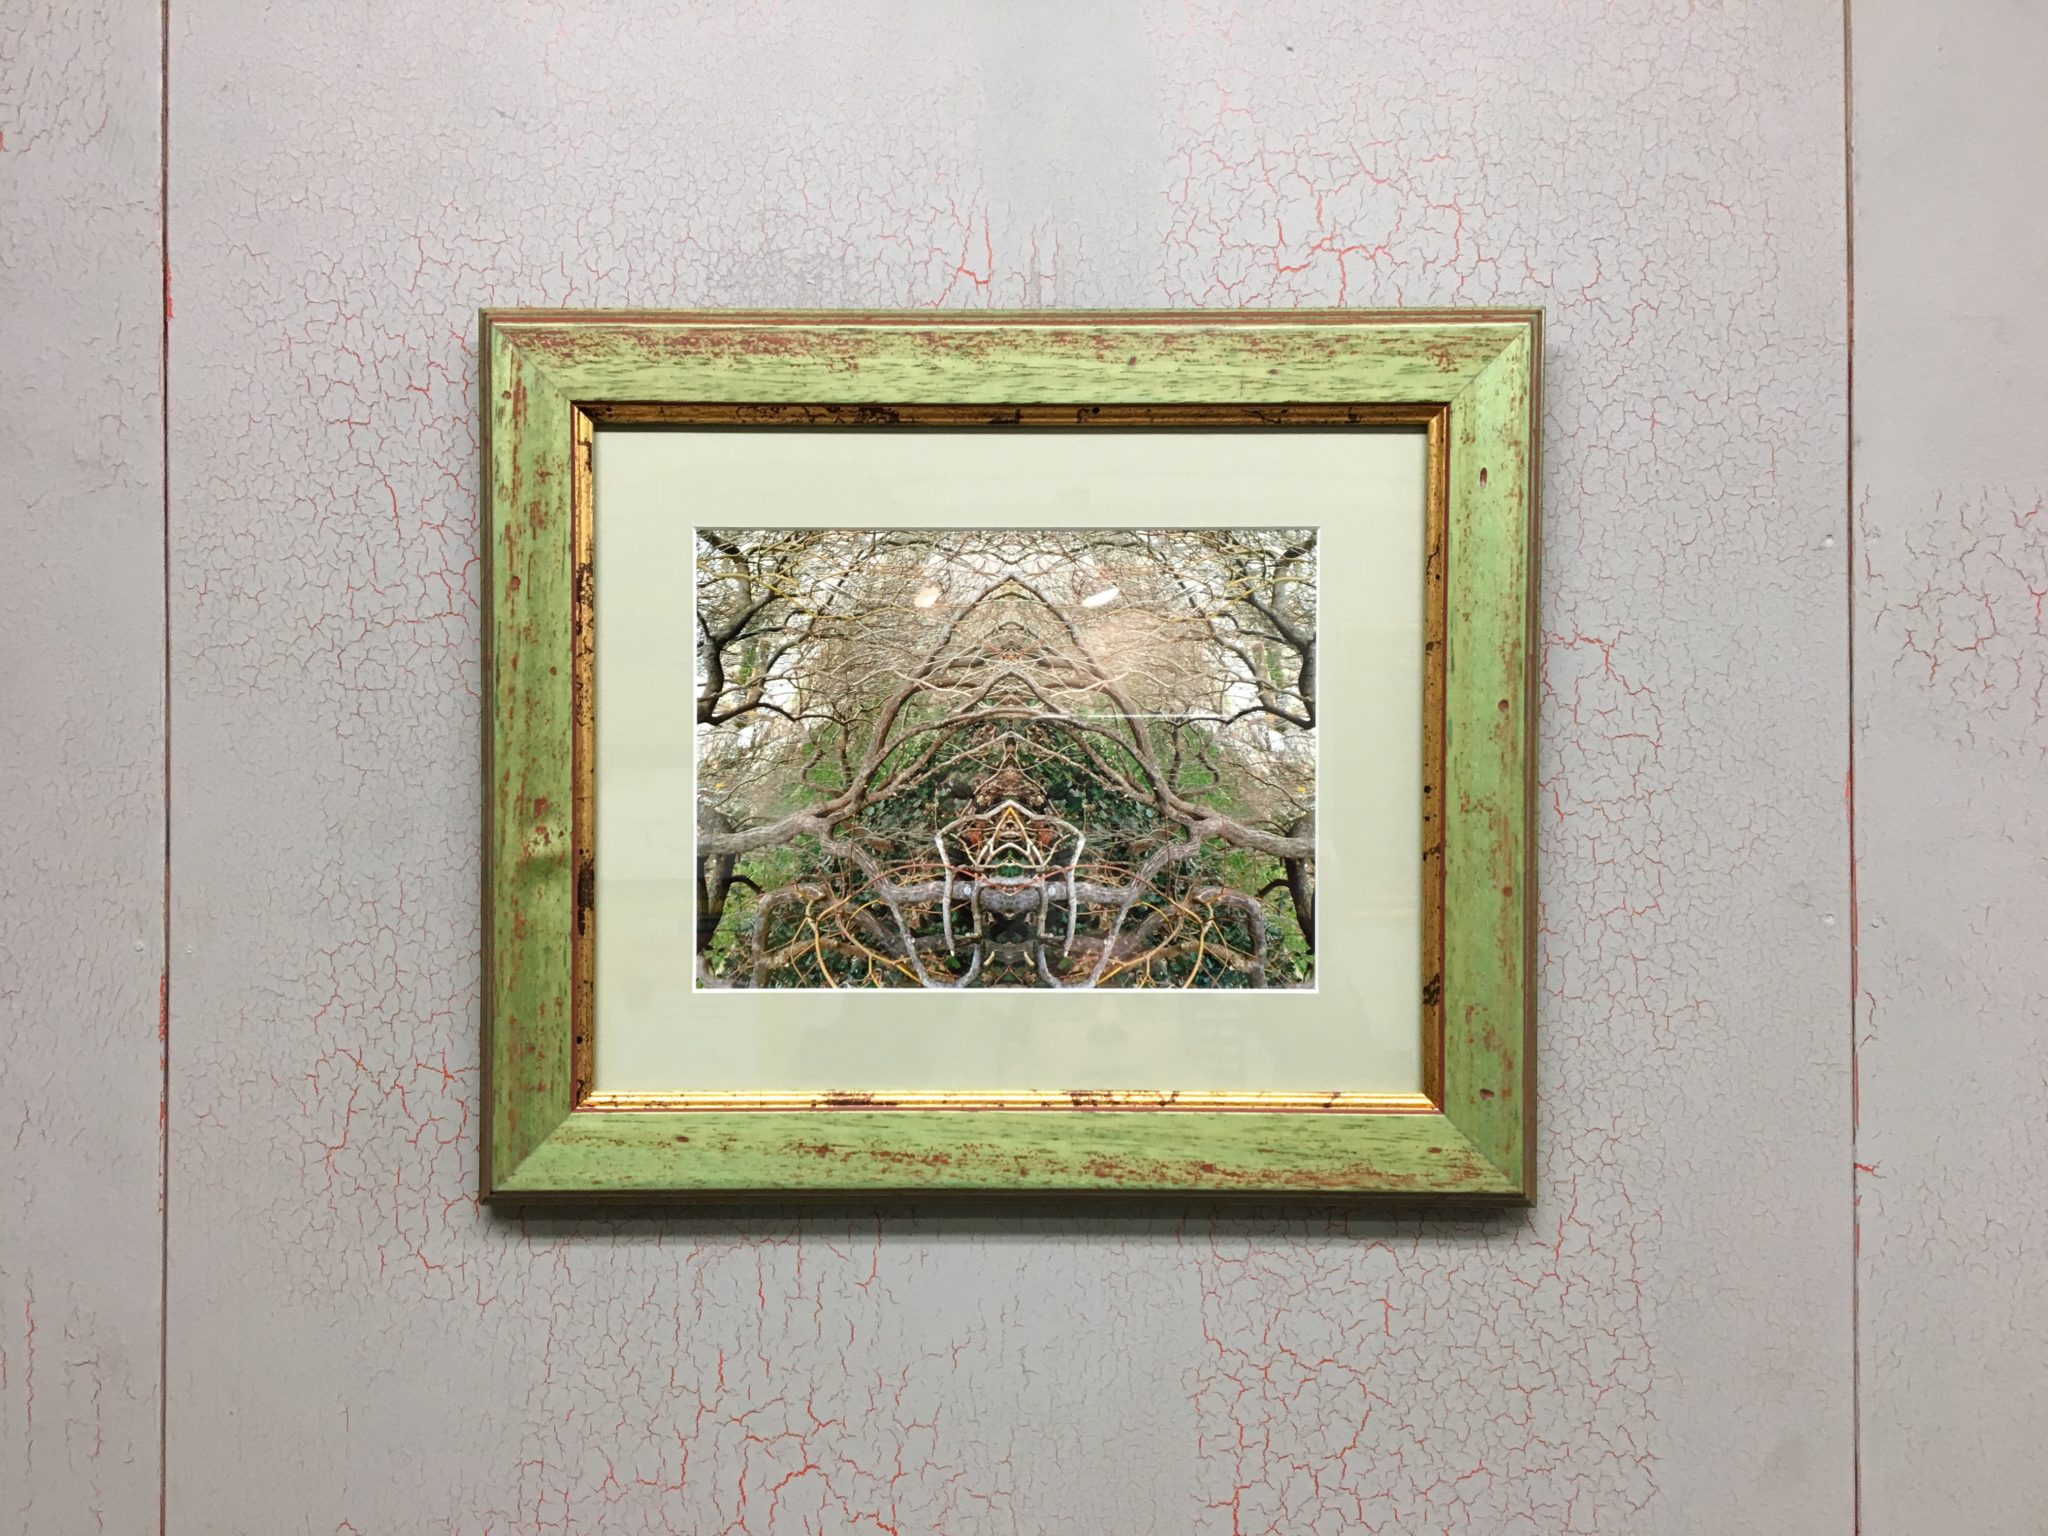 Original Photo Collage by Angela Yanni in a Rustic Frame Supplied by Omega Moulding